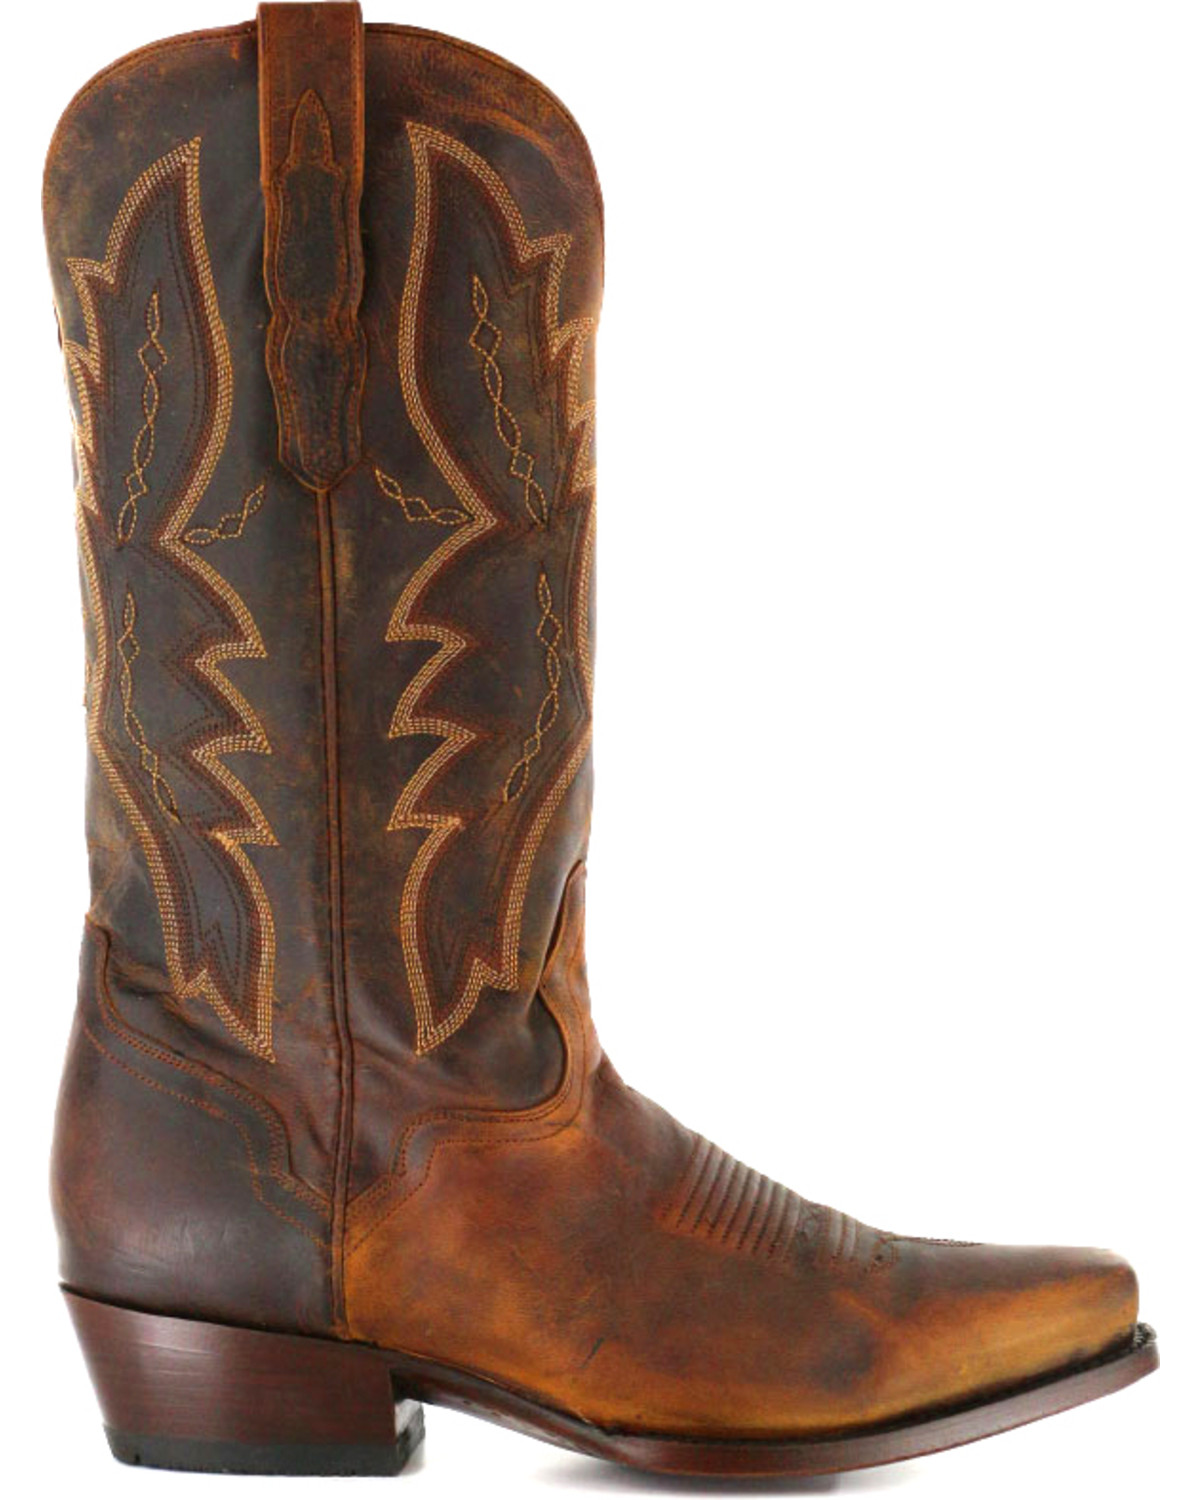 El Dorado Men's Distressed Goat Square Toe Western Boots